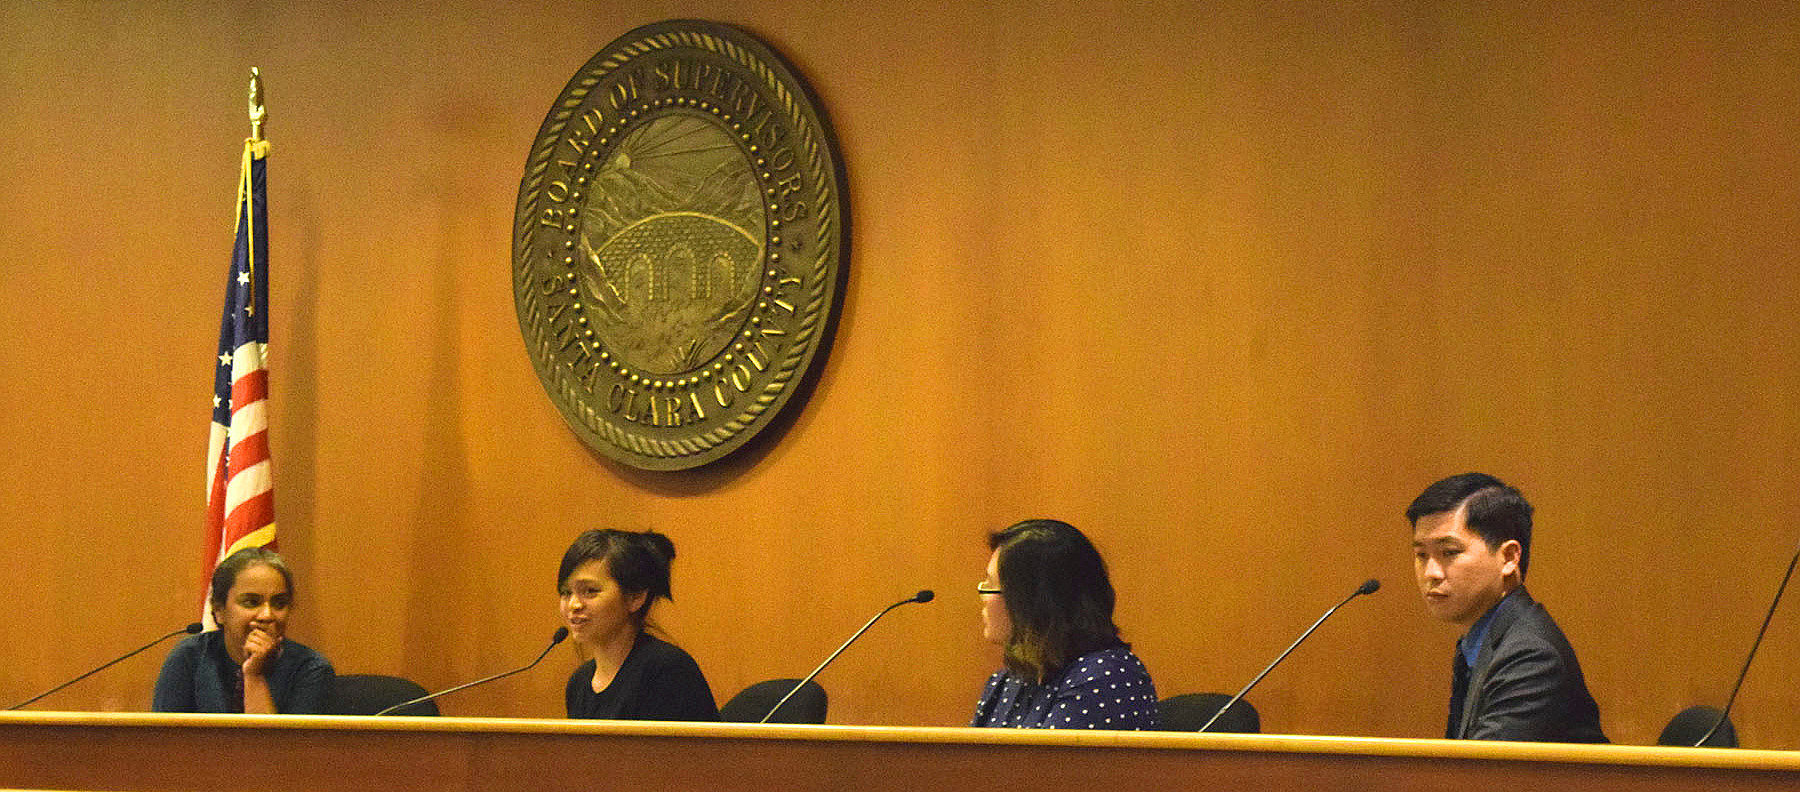 Discussion Panel at the Screening for Halmoni and Dream Riders. From Left to Right - Priya Murthy, SIREN. Charisse Domingo, Silicon Valley De-Bug. Anna Oh, Producer and Director of Halmoni. Theodore Ko, Asian Law Alliance